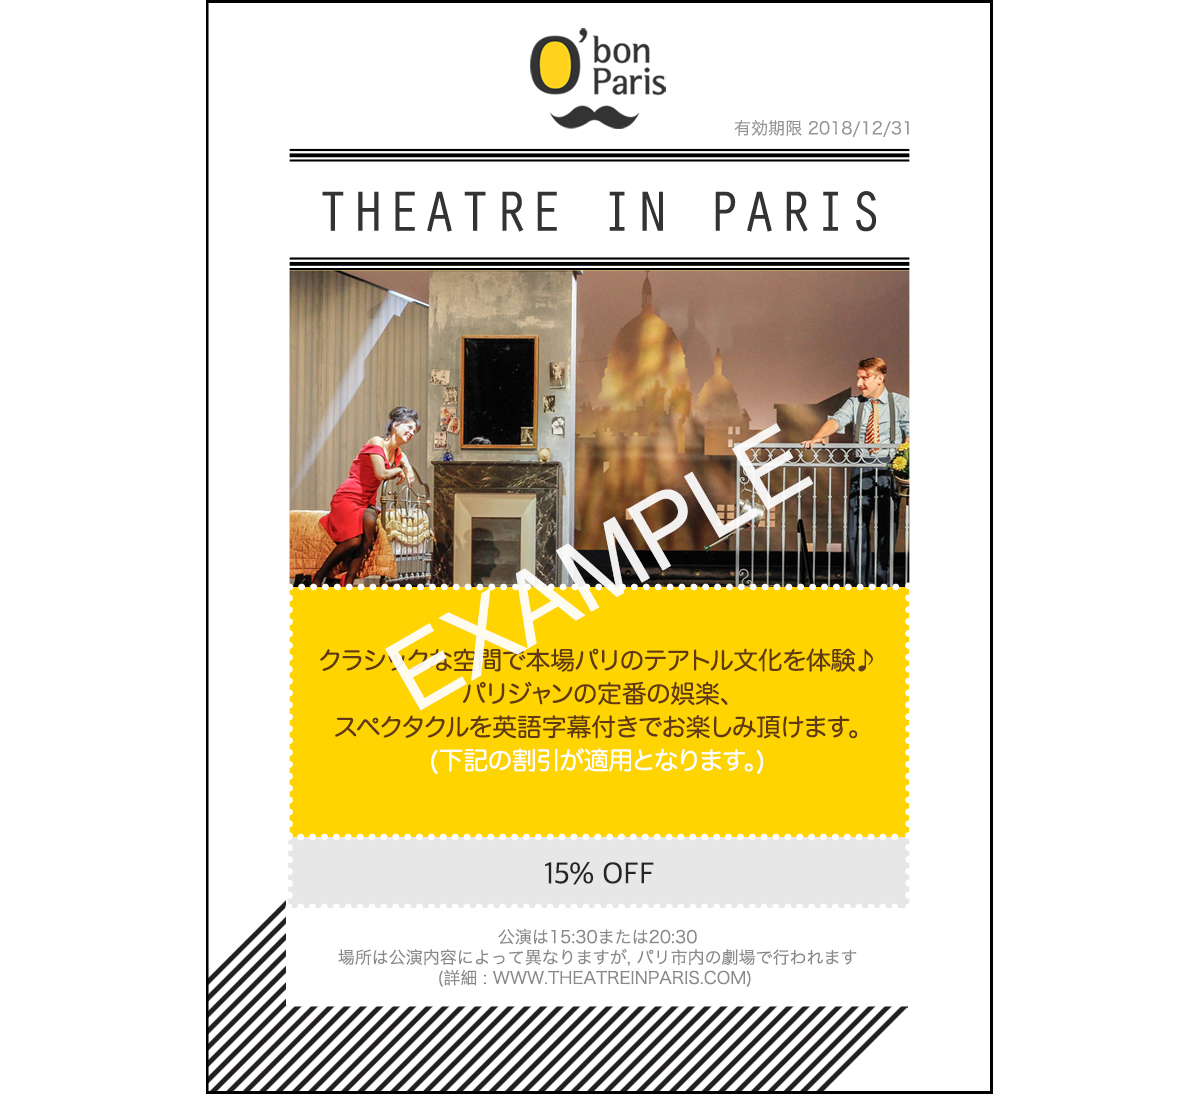 Papermill playhouse coupon code